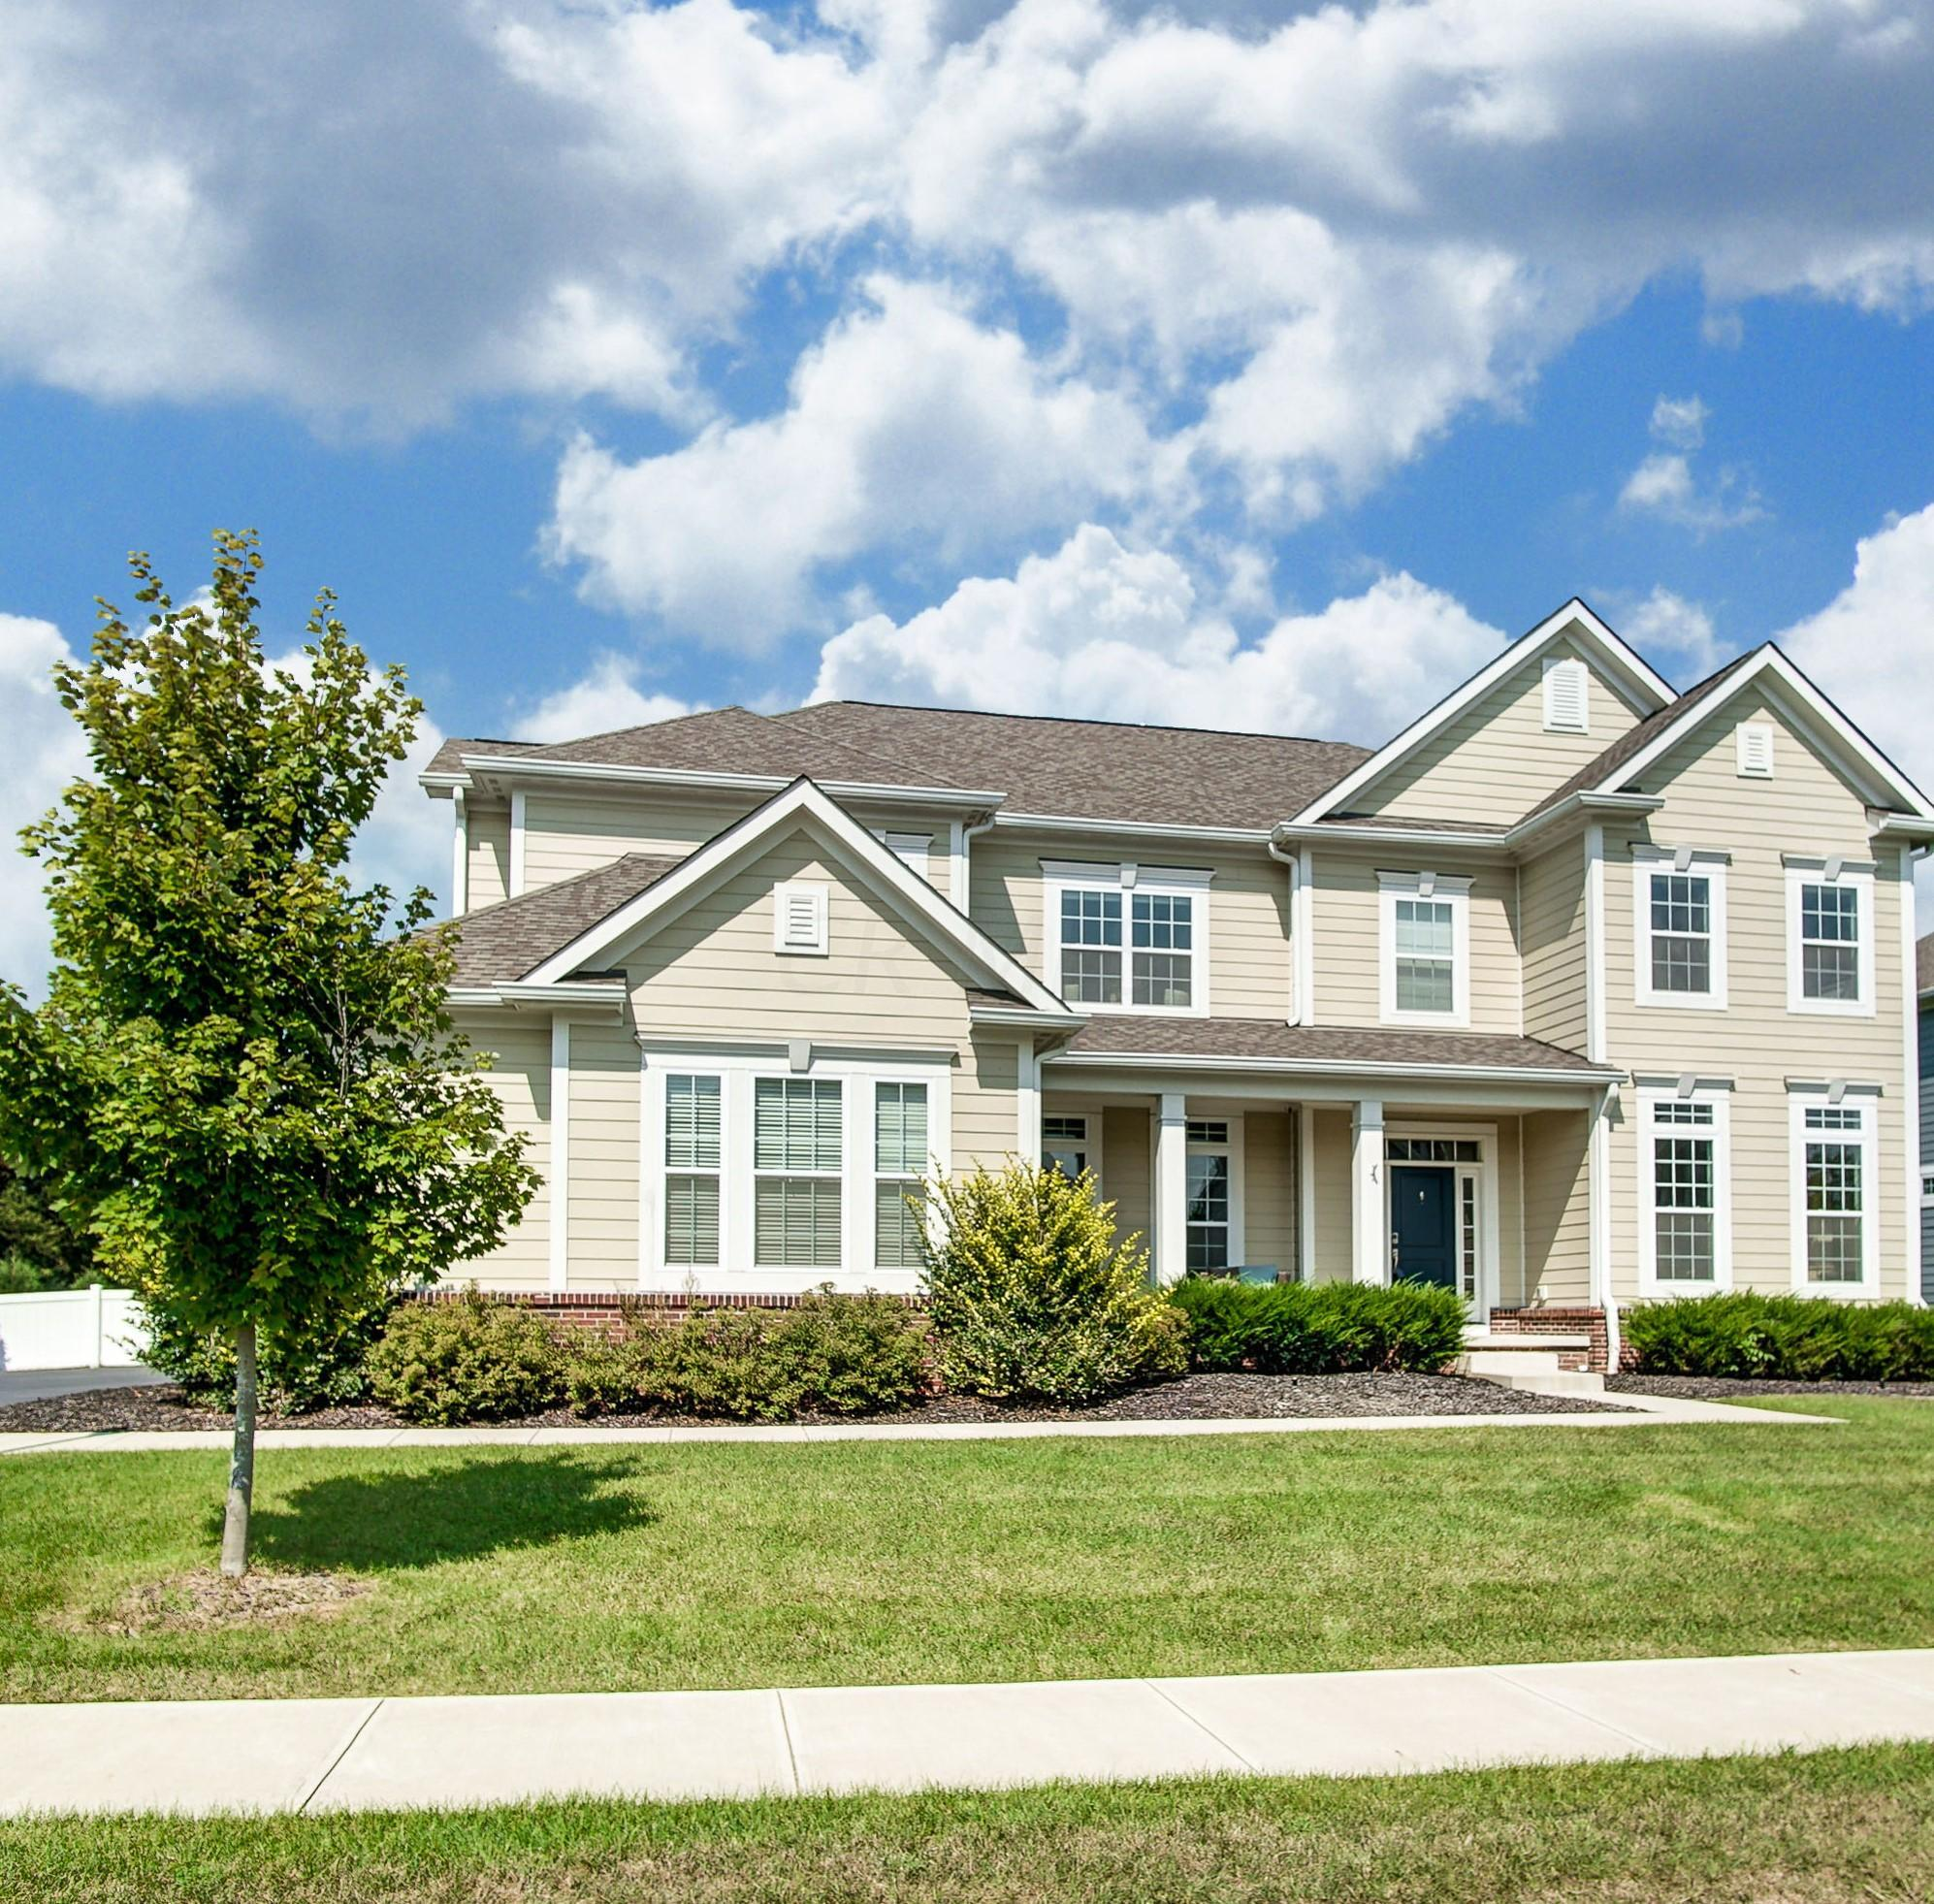 Photo of 8360 Laidbrook Place, New Albany, OH 43054